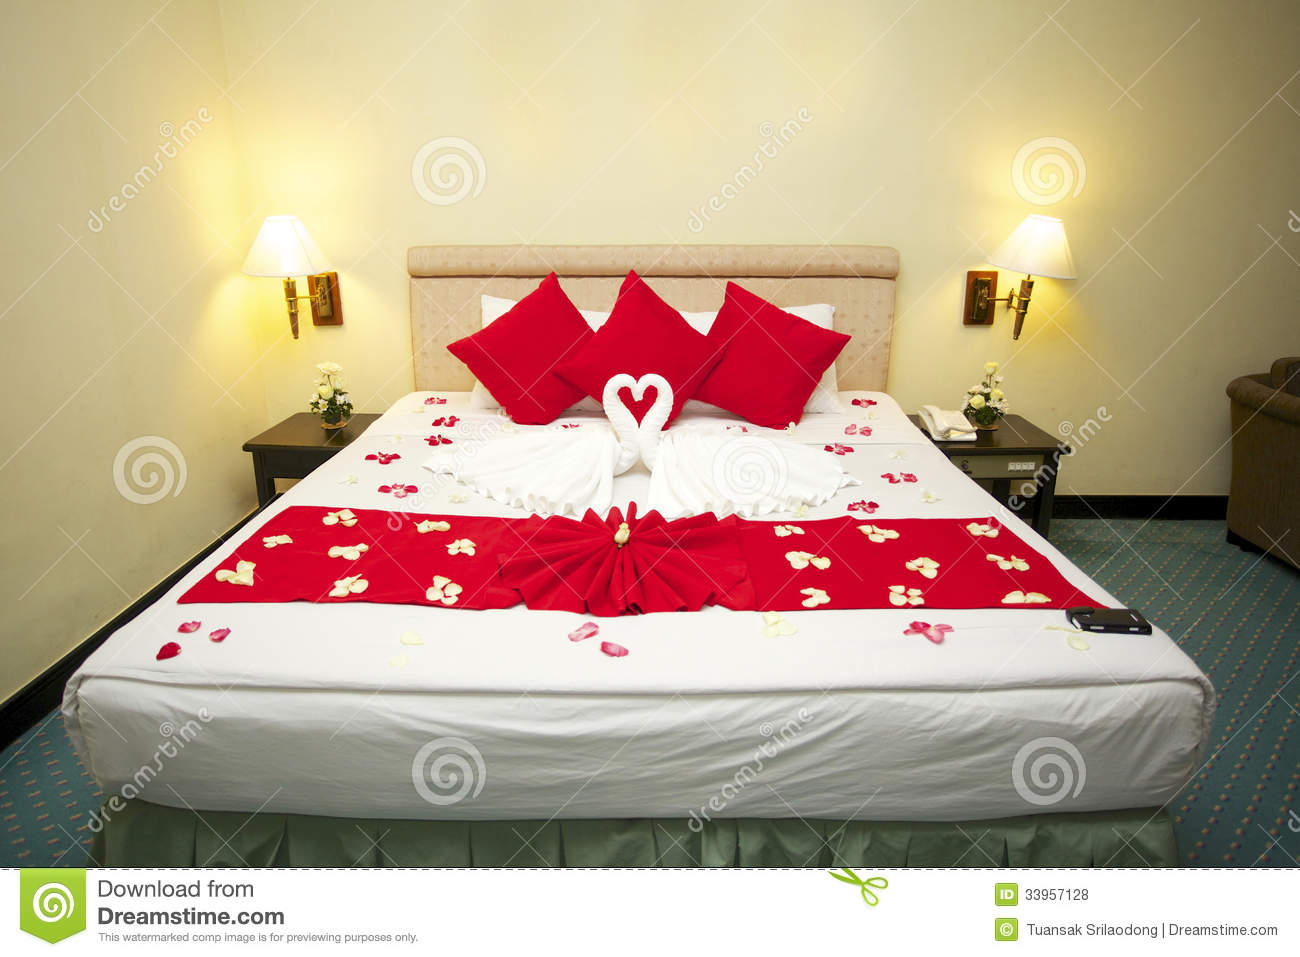 Couple room decoration - Honeymoon Bed Royalty Free Stock Photos Image 33957128